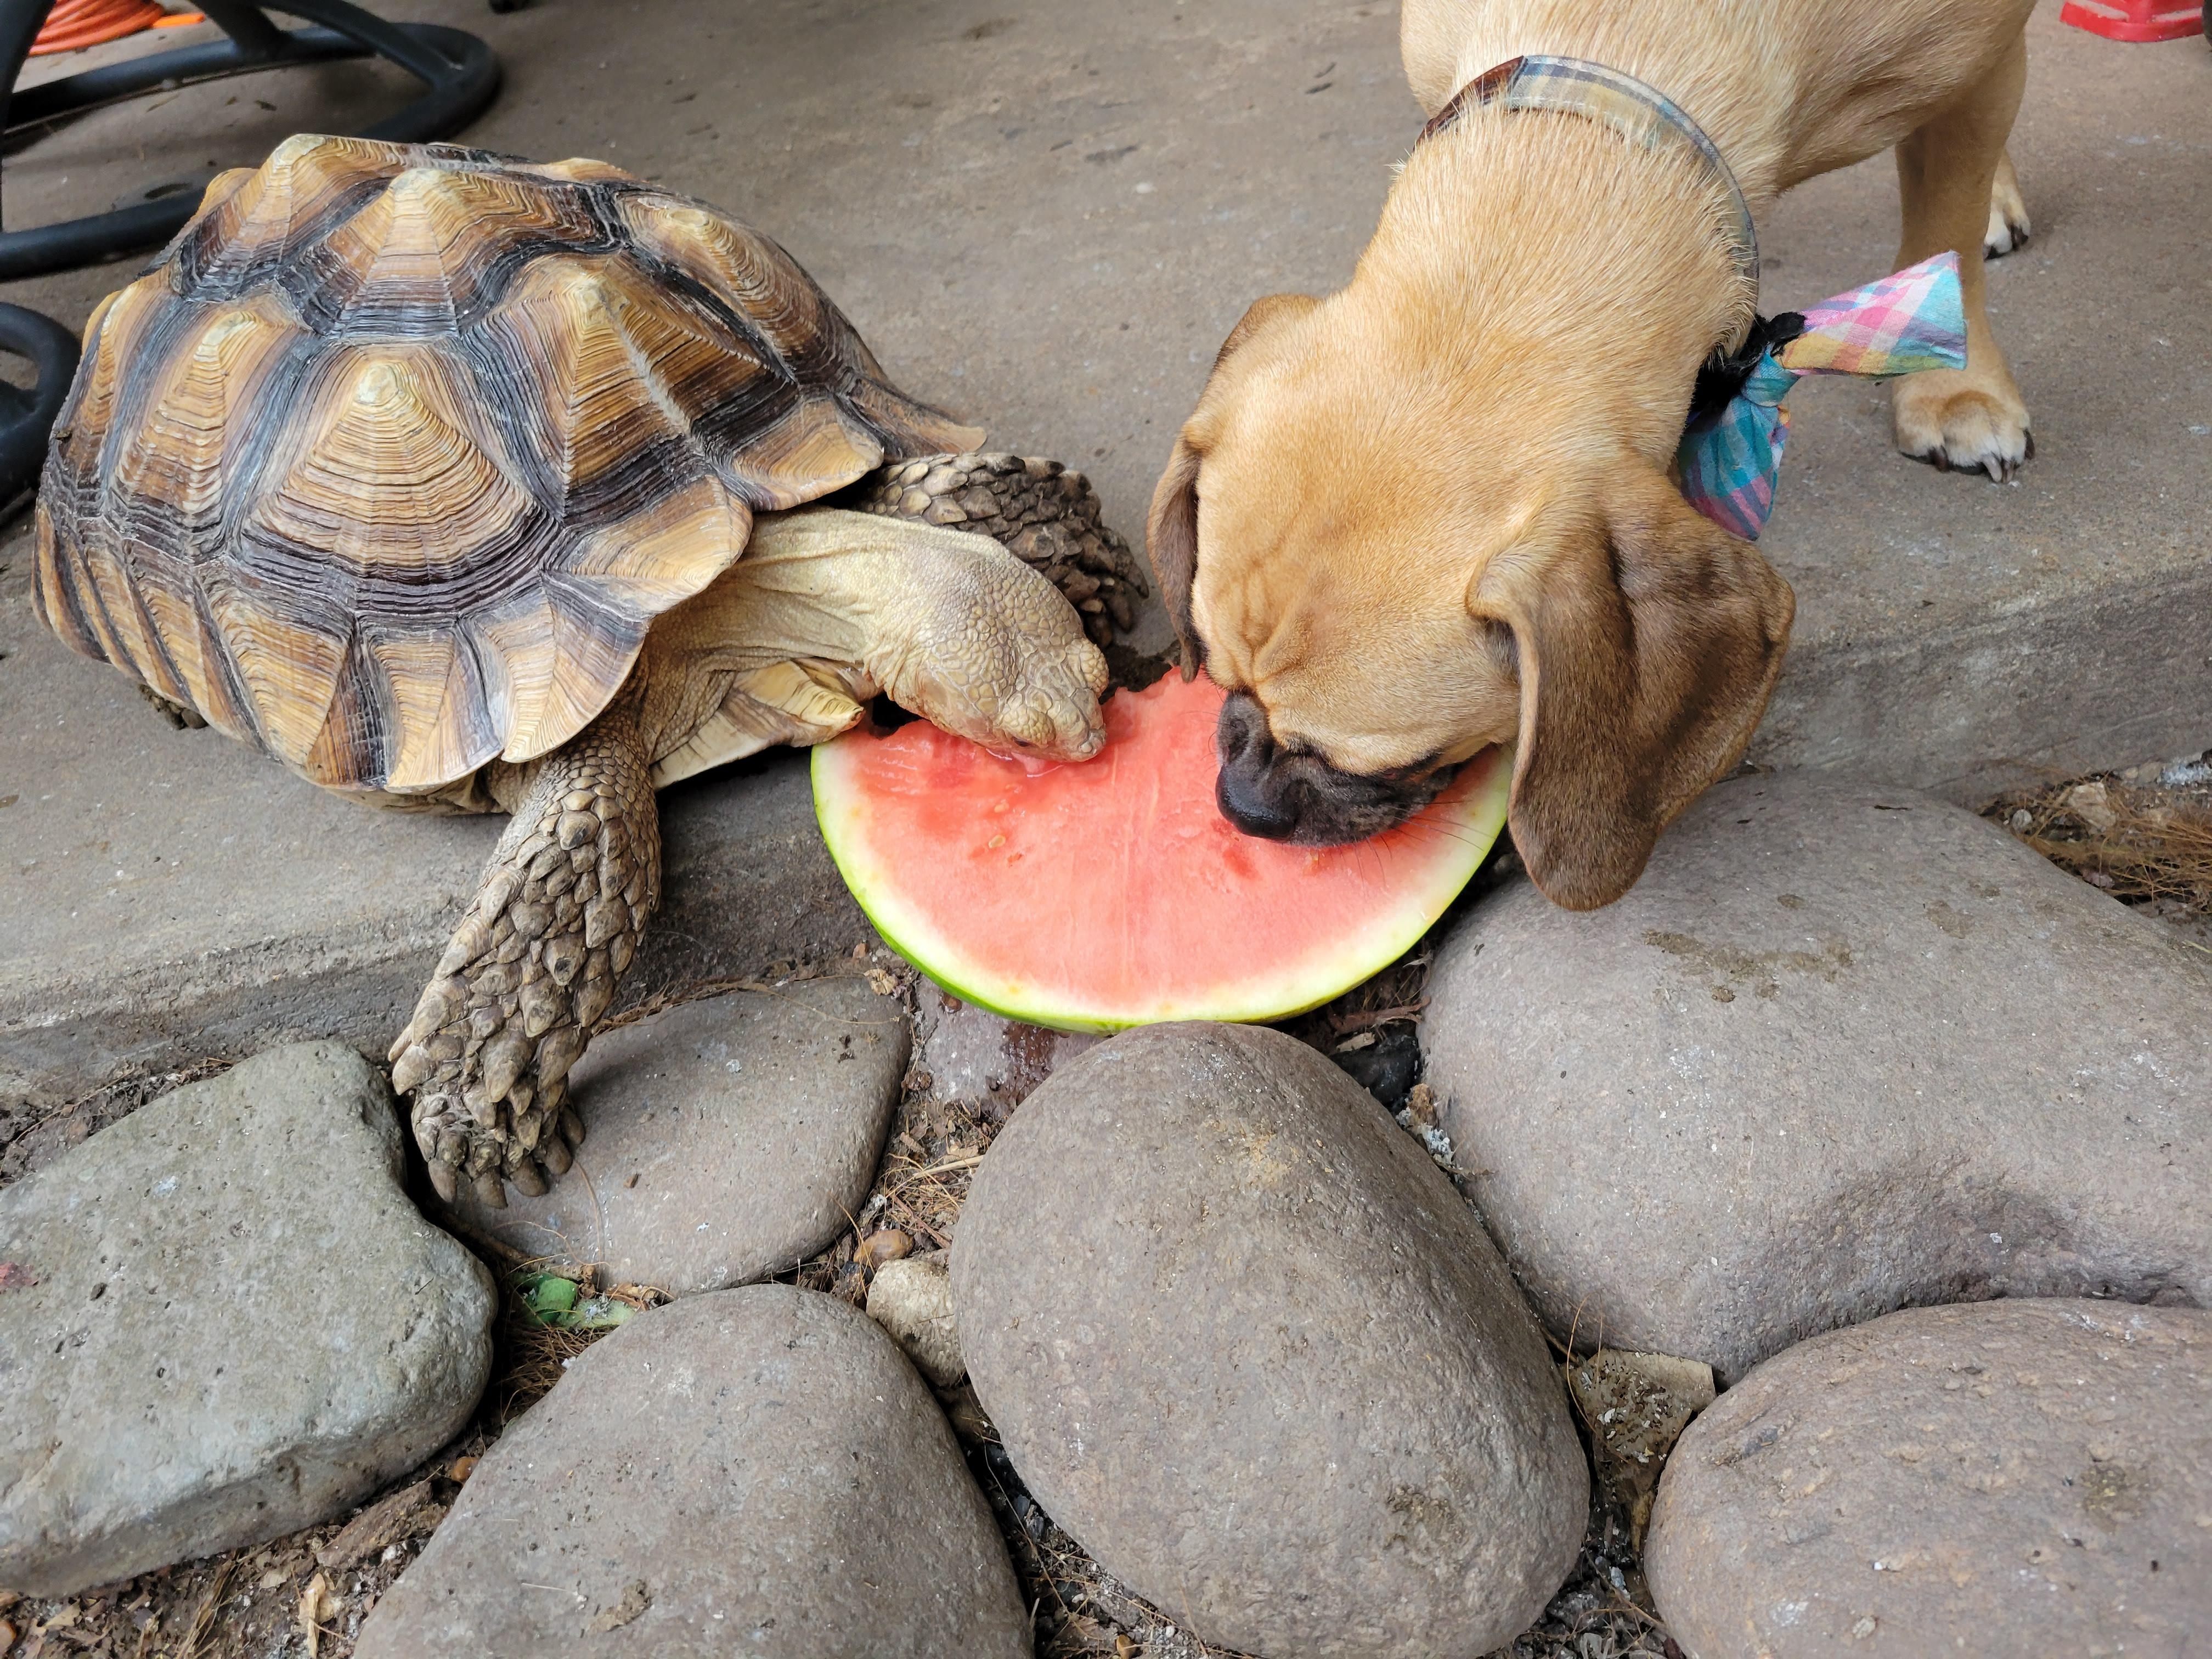 Bongo and Rooster sharing some watermelon